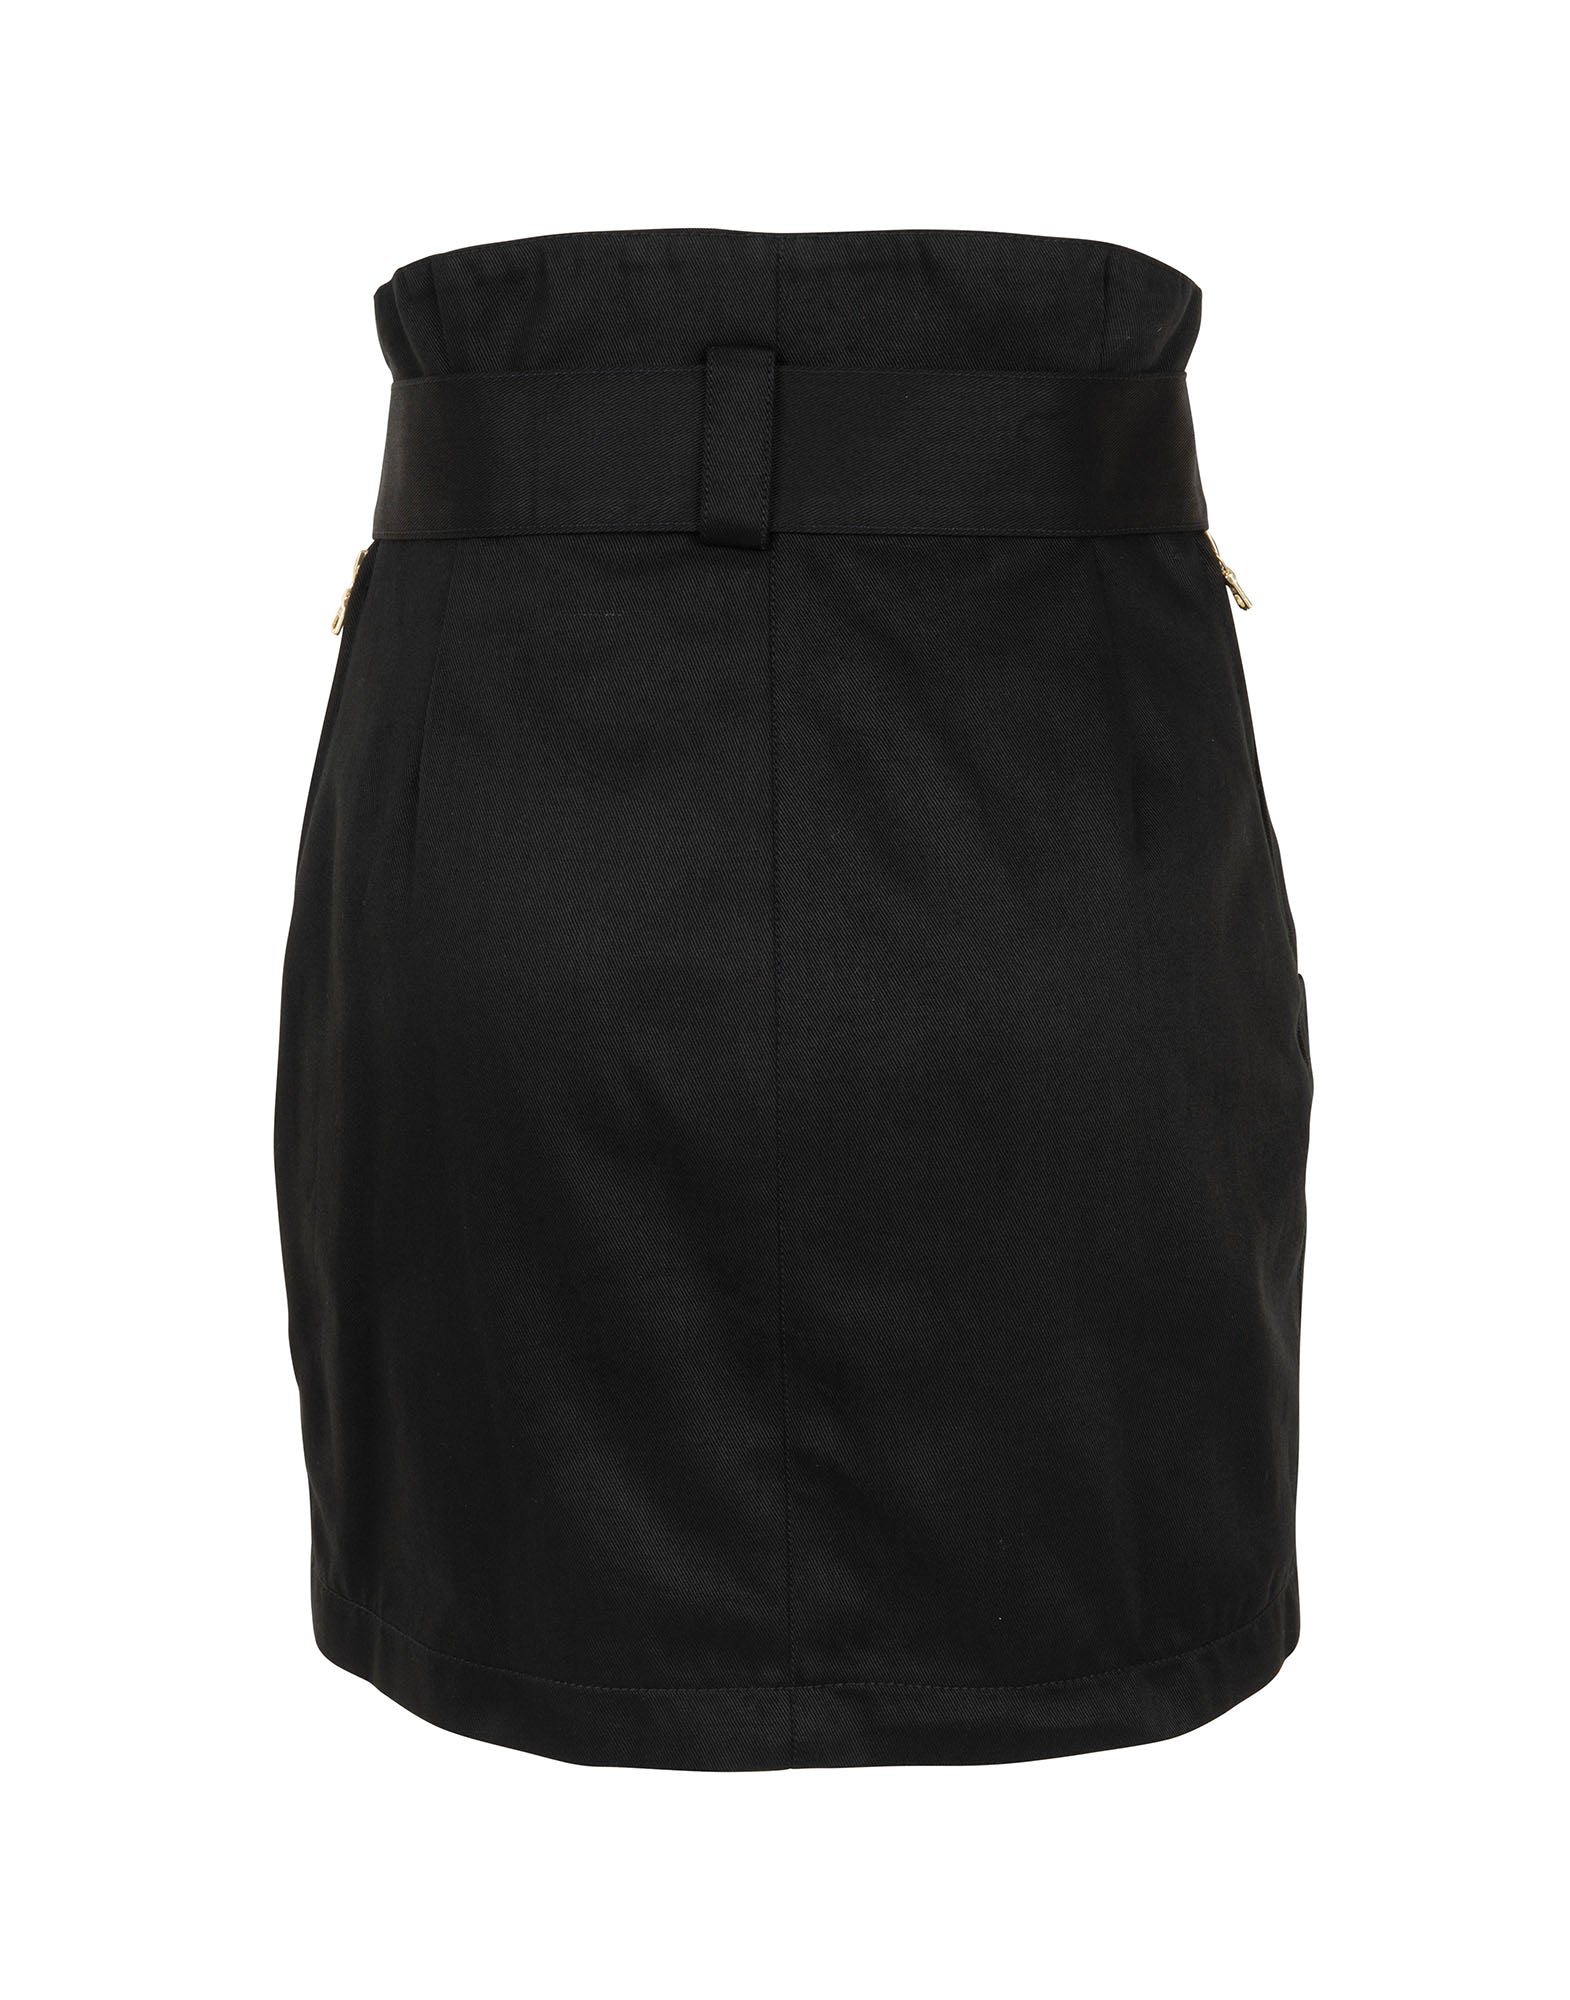 Black mini skirt in canvas - NEW COLLECTION